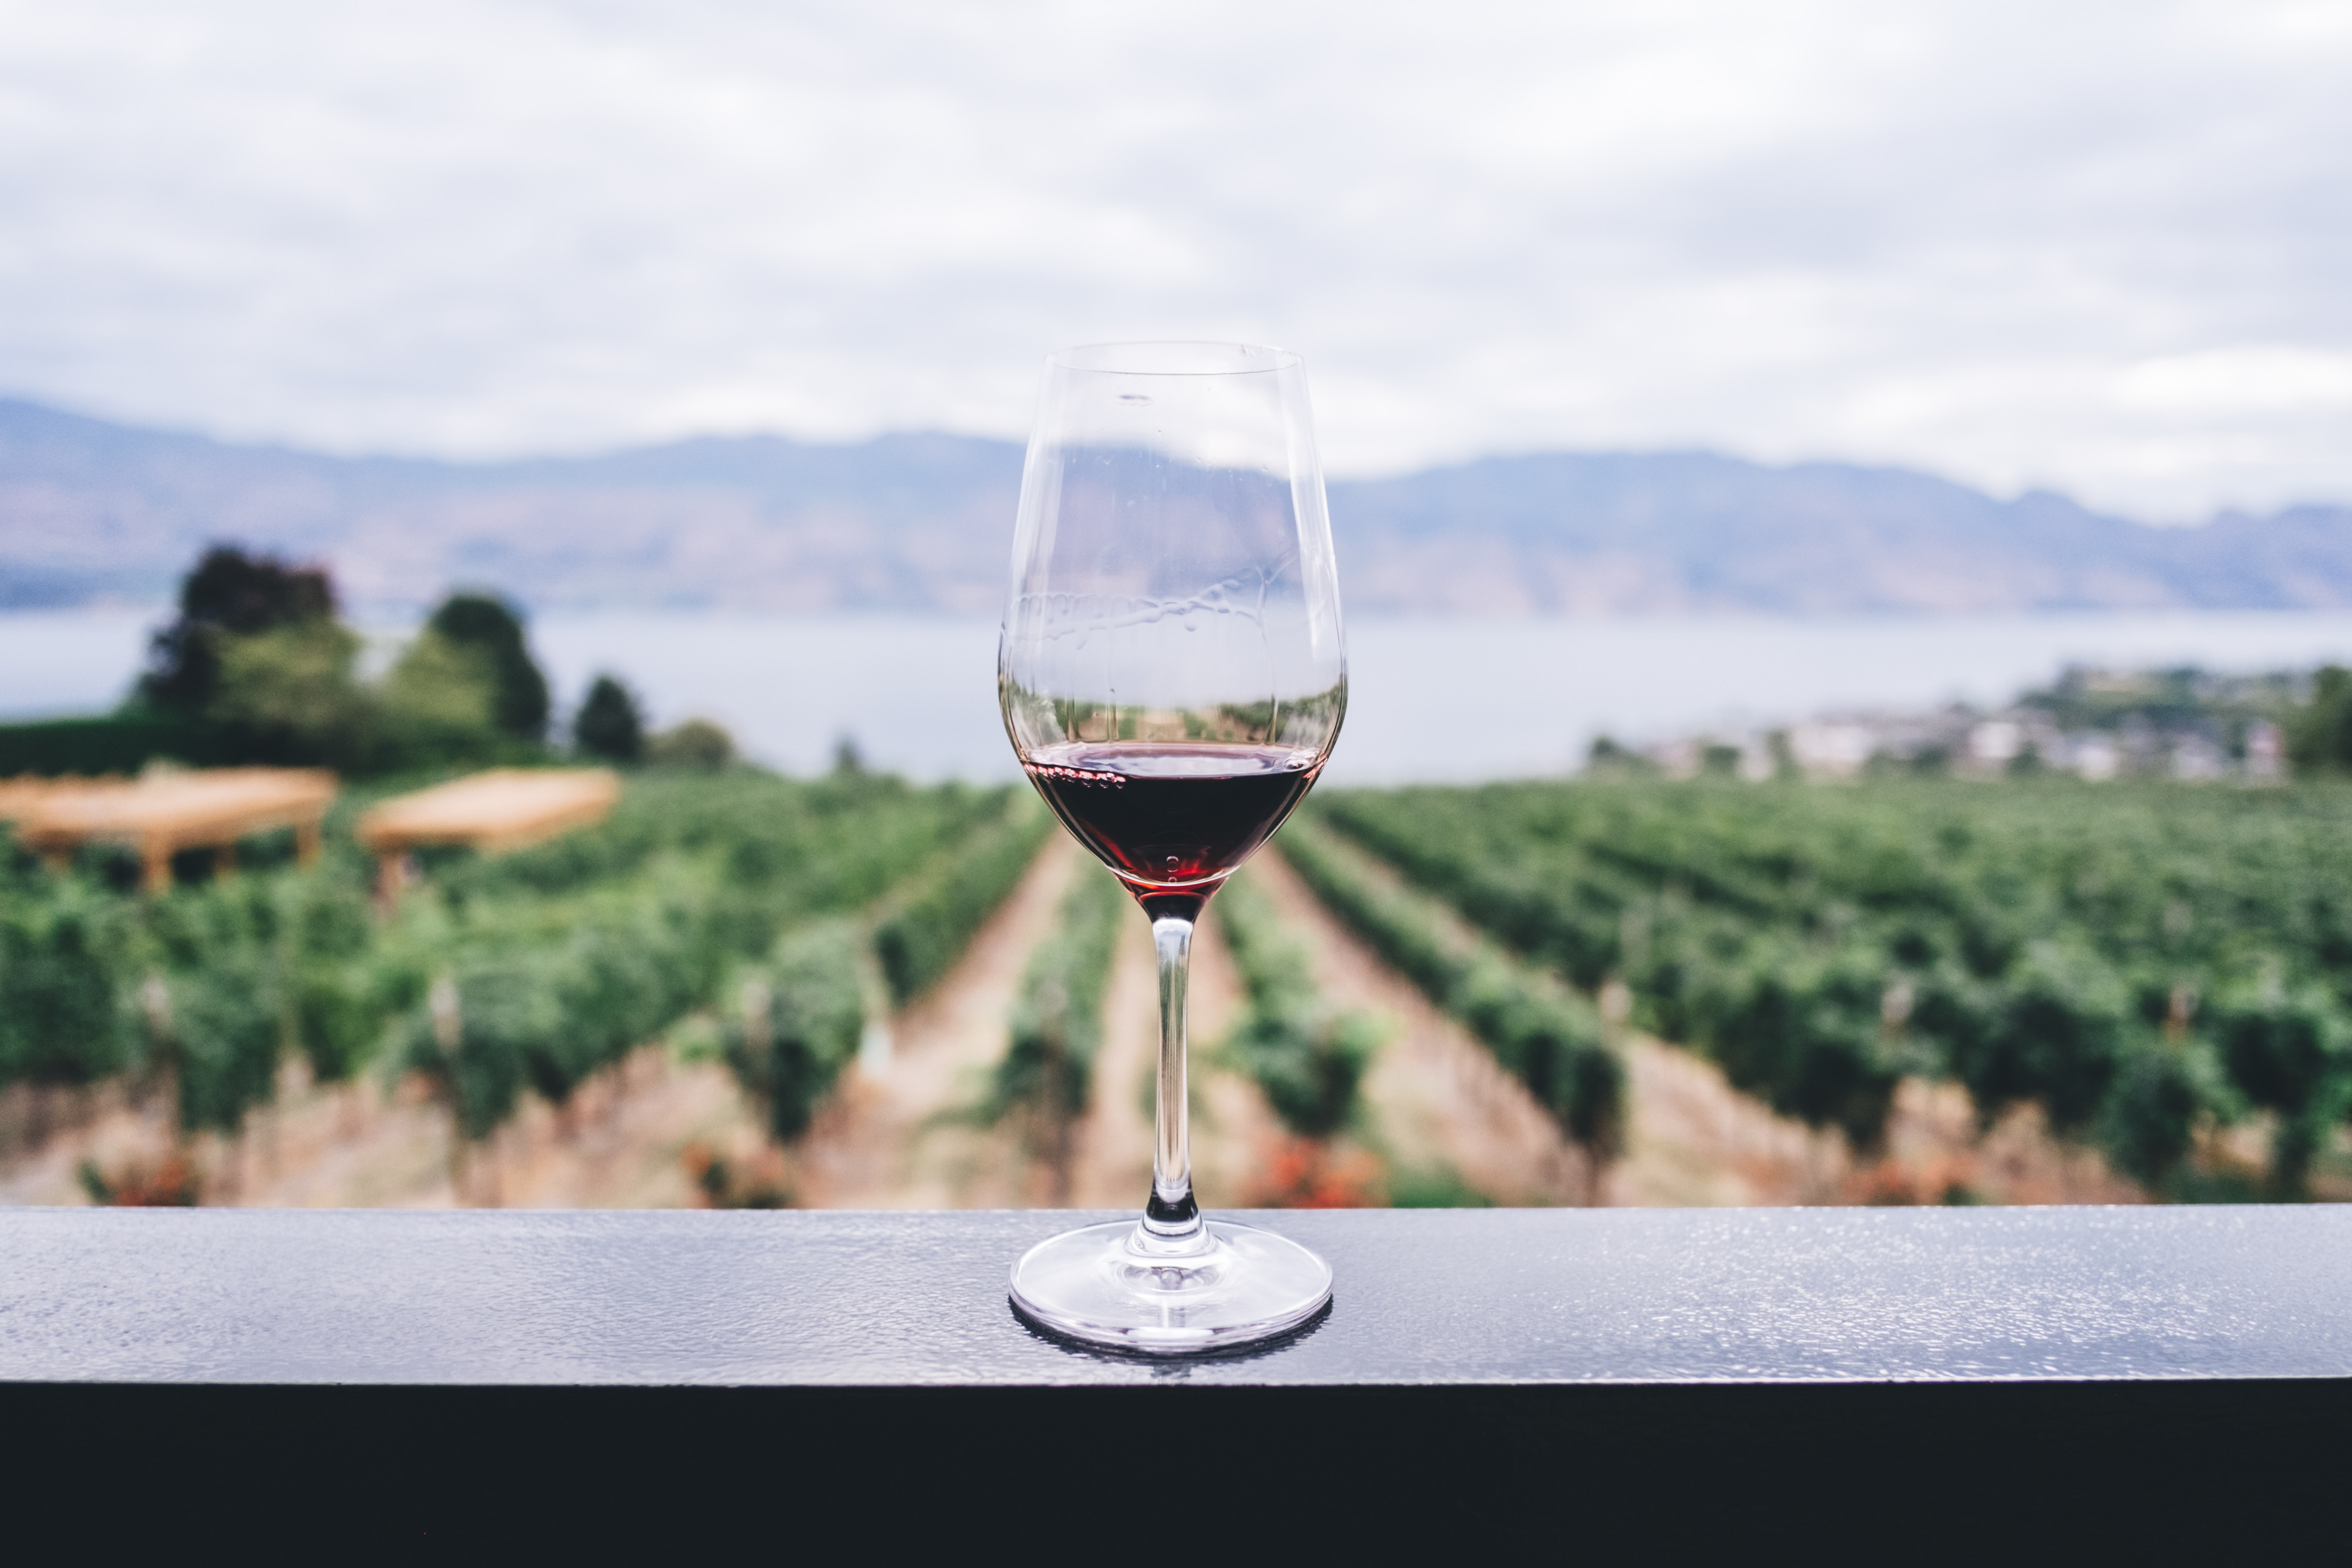 Red Wine in a glass overlooking a field